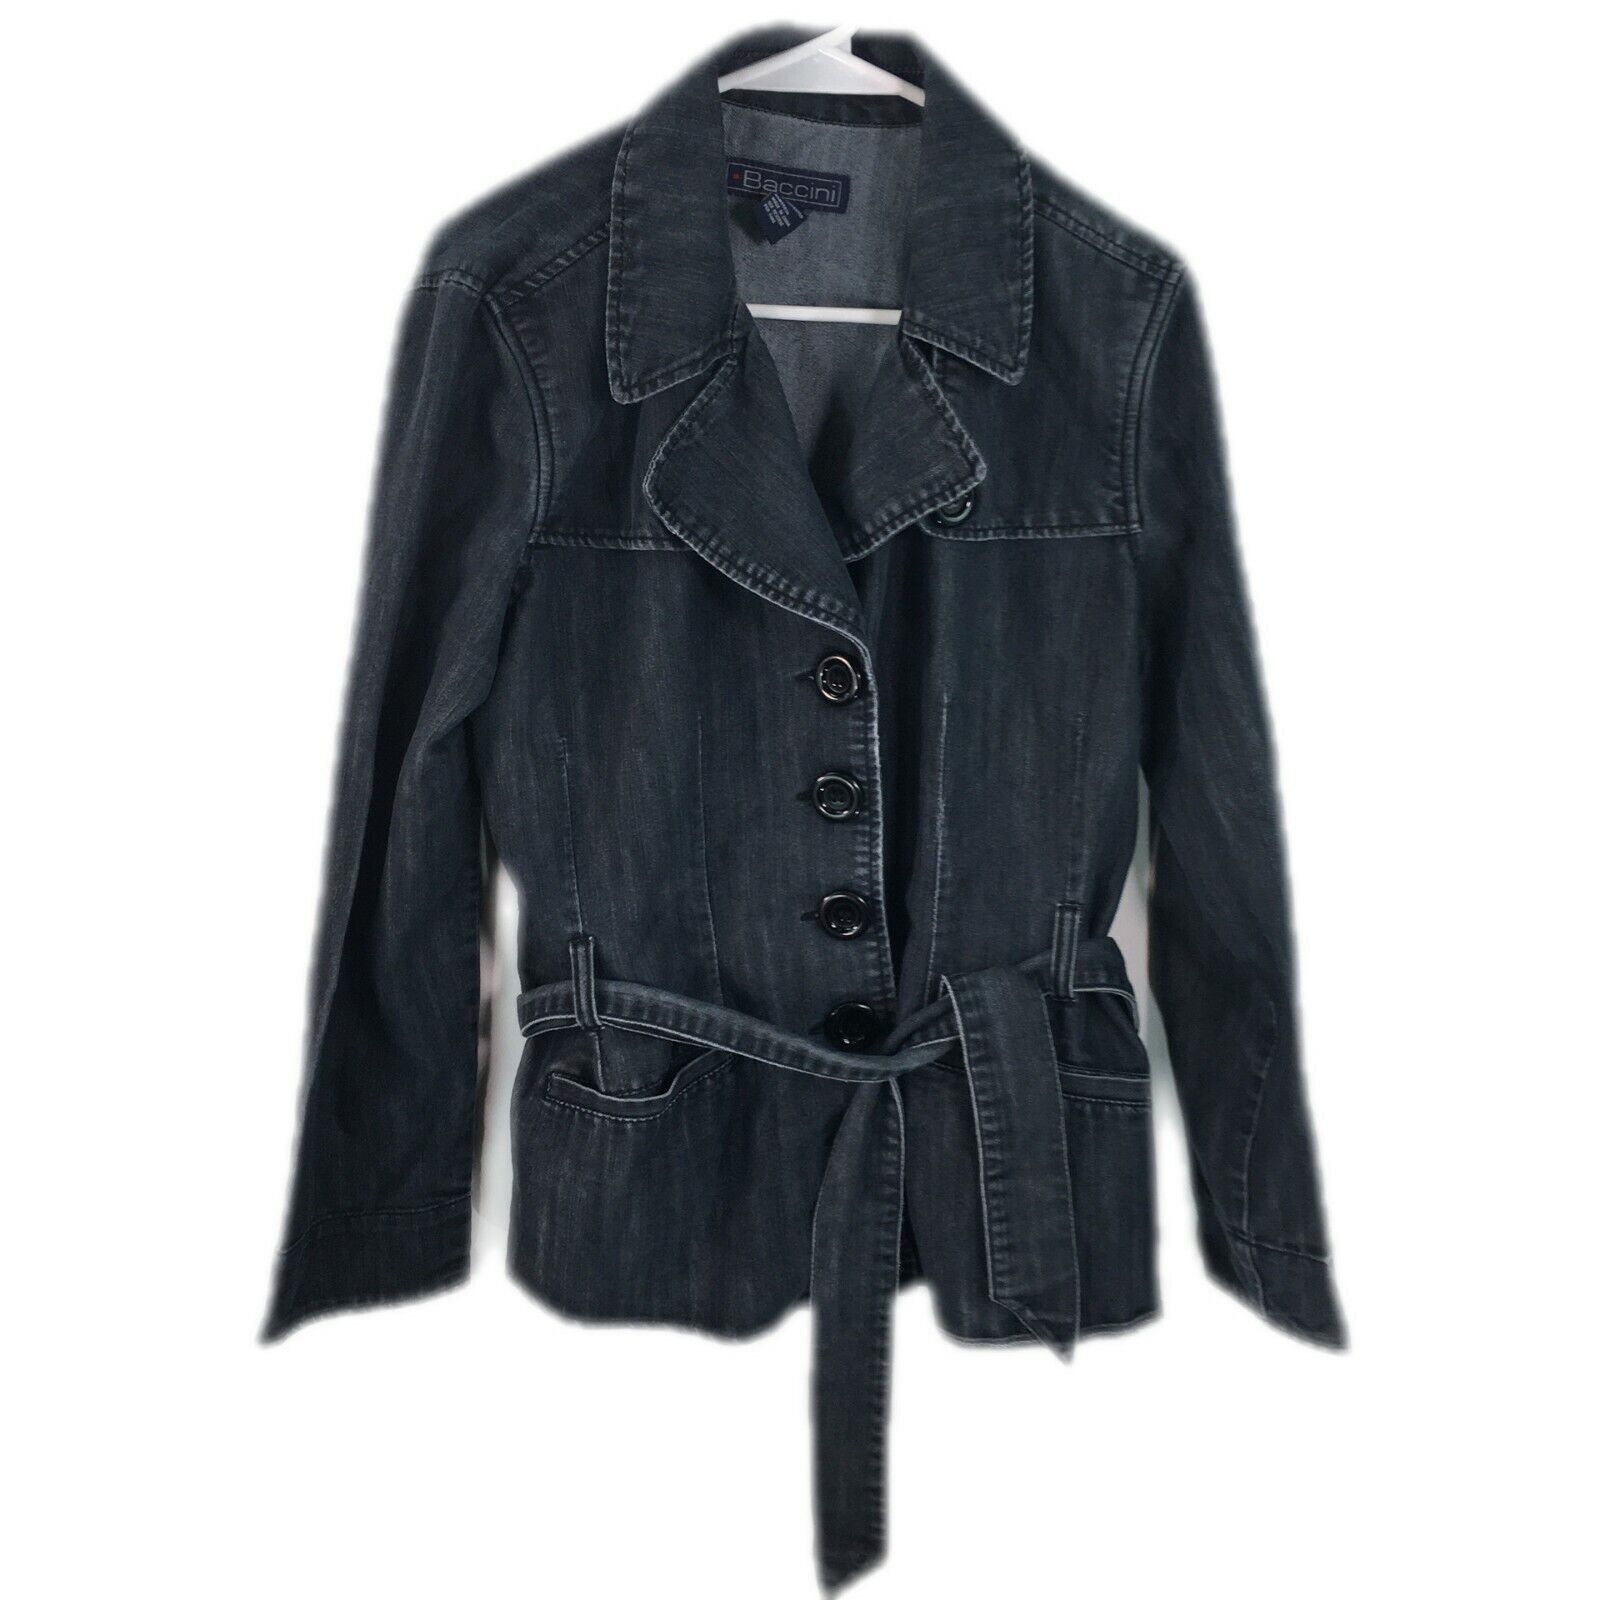 VTG Baccini Womens Button Front Long Sleeves Black Denim Belted Jacket Size XL